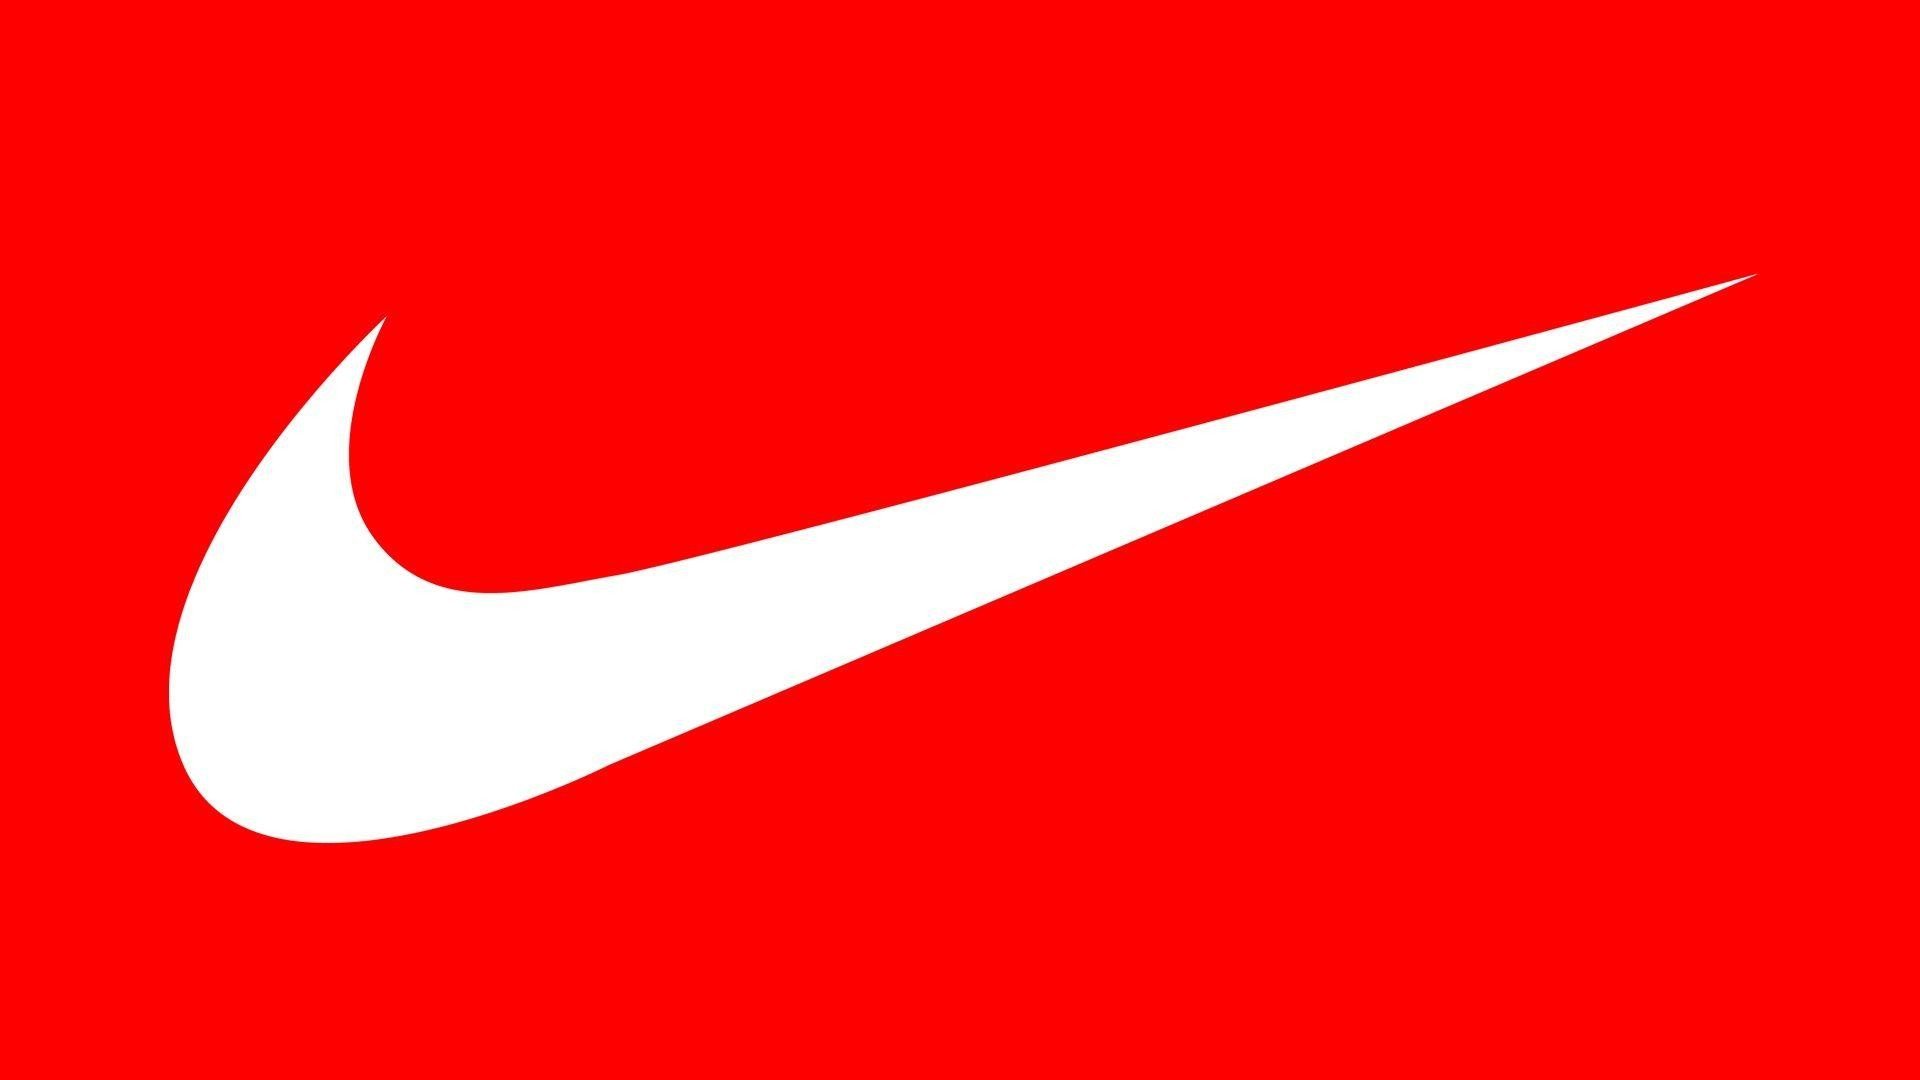 nike wallpaper backgrounds 183��